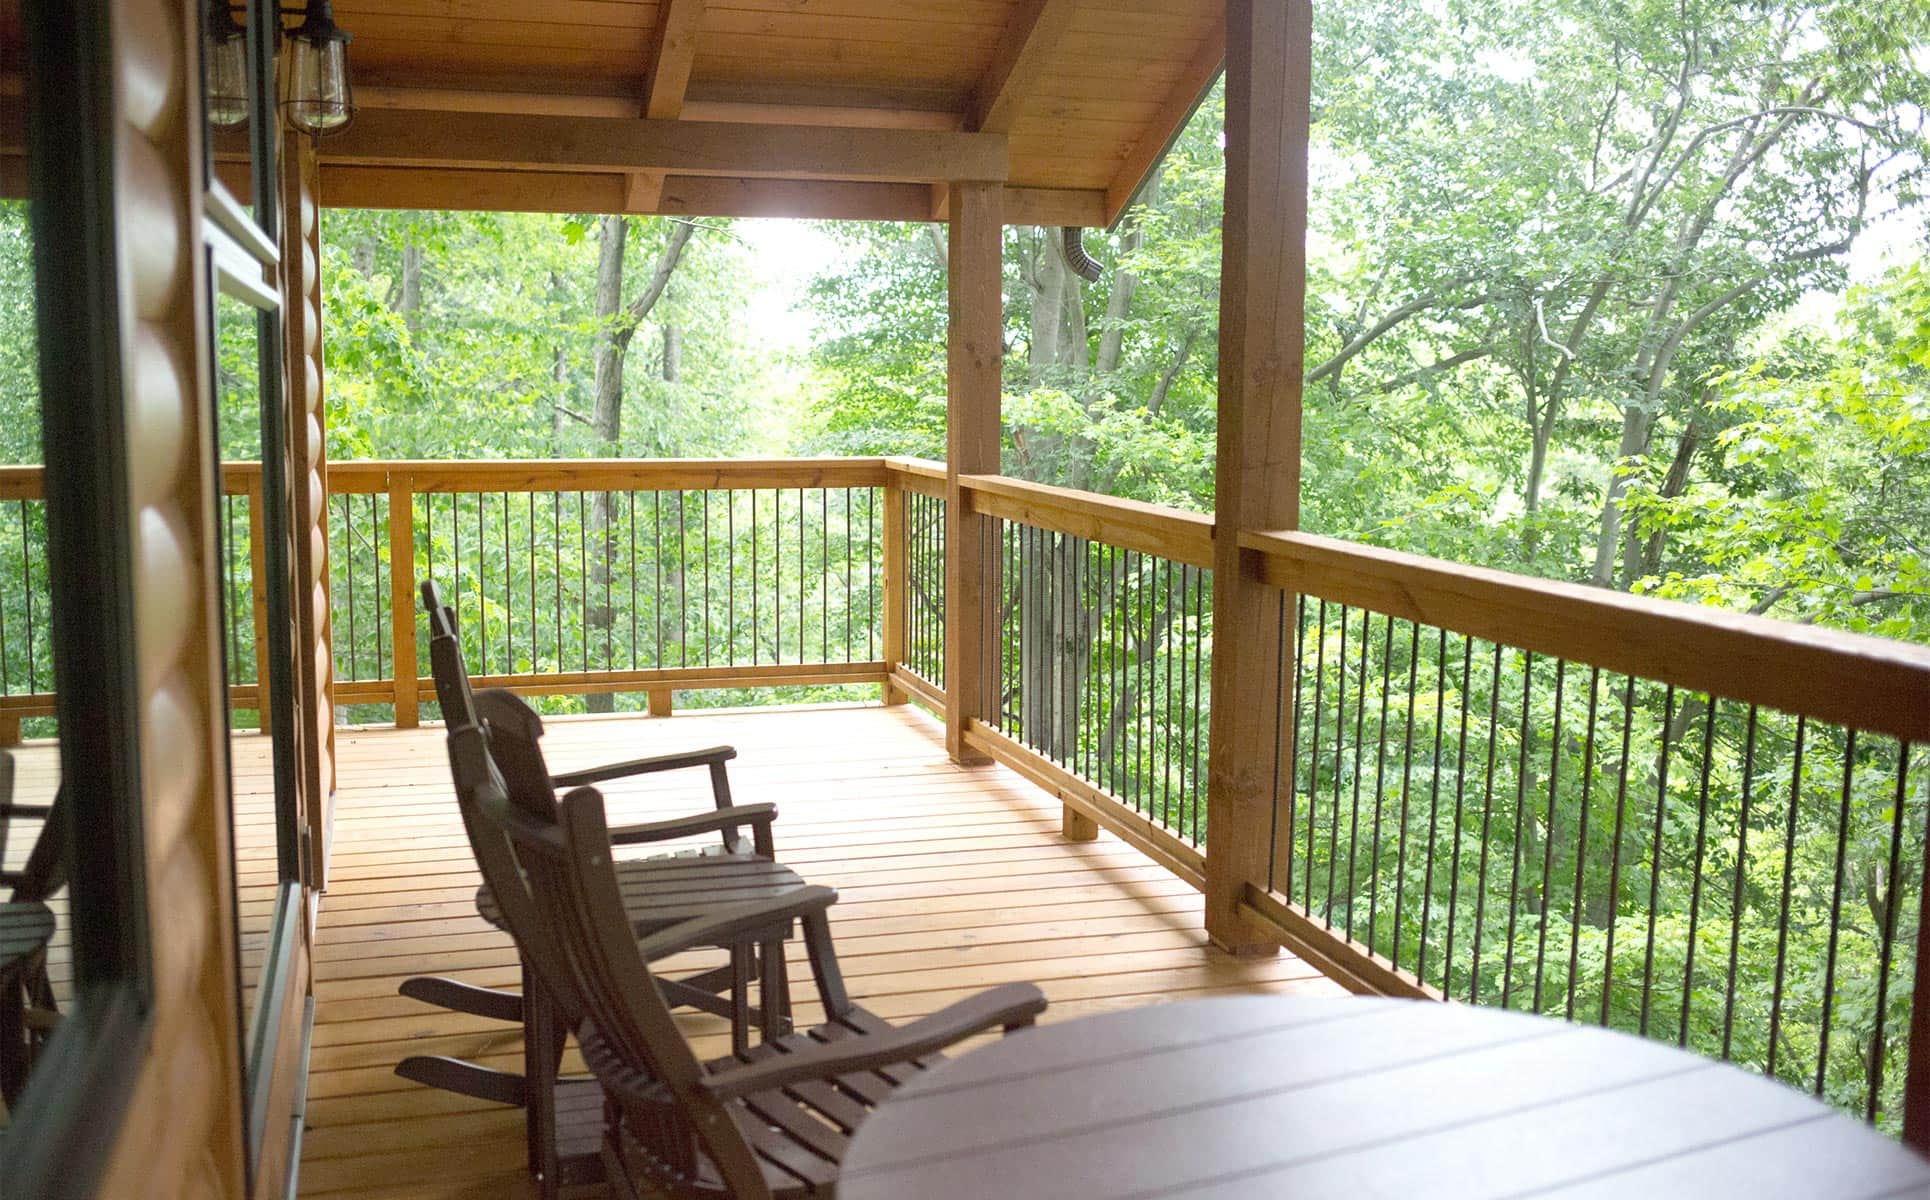 Deck with rocking chairs and view of the trees